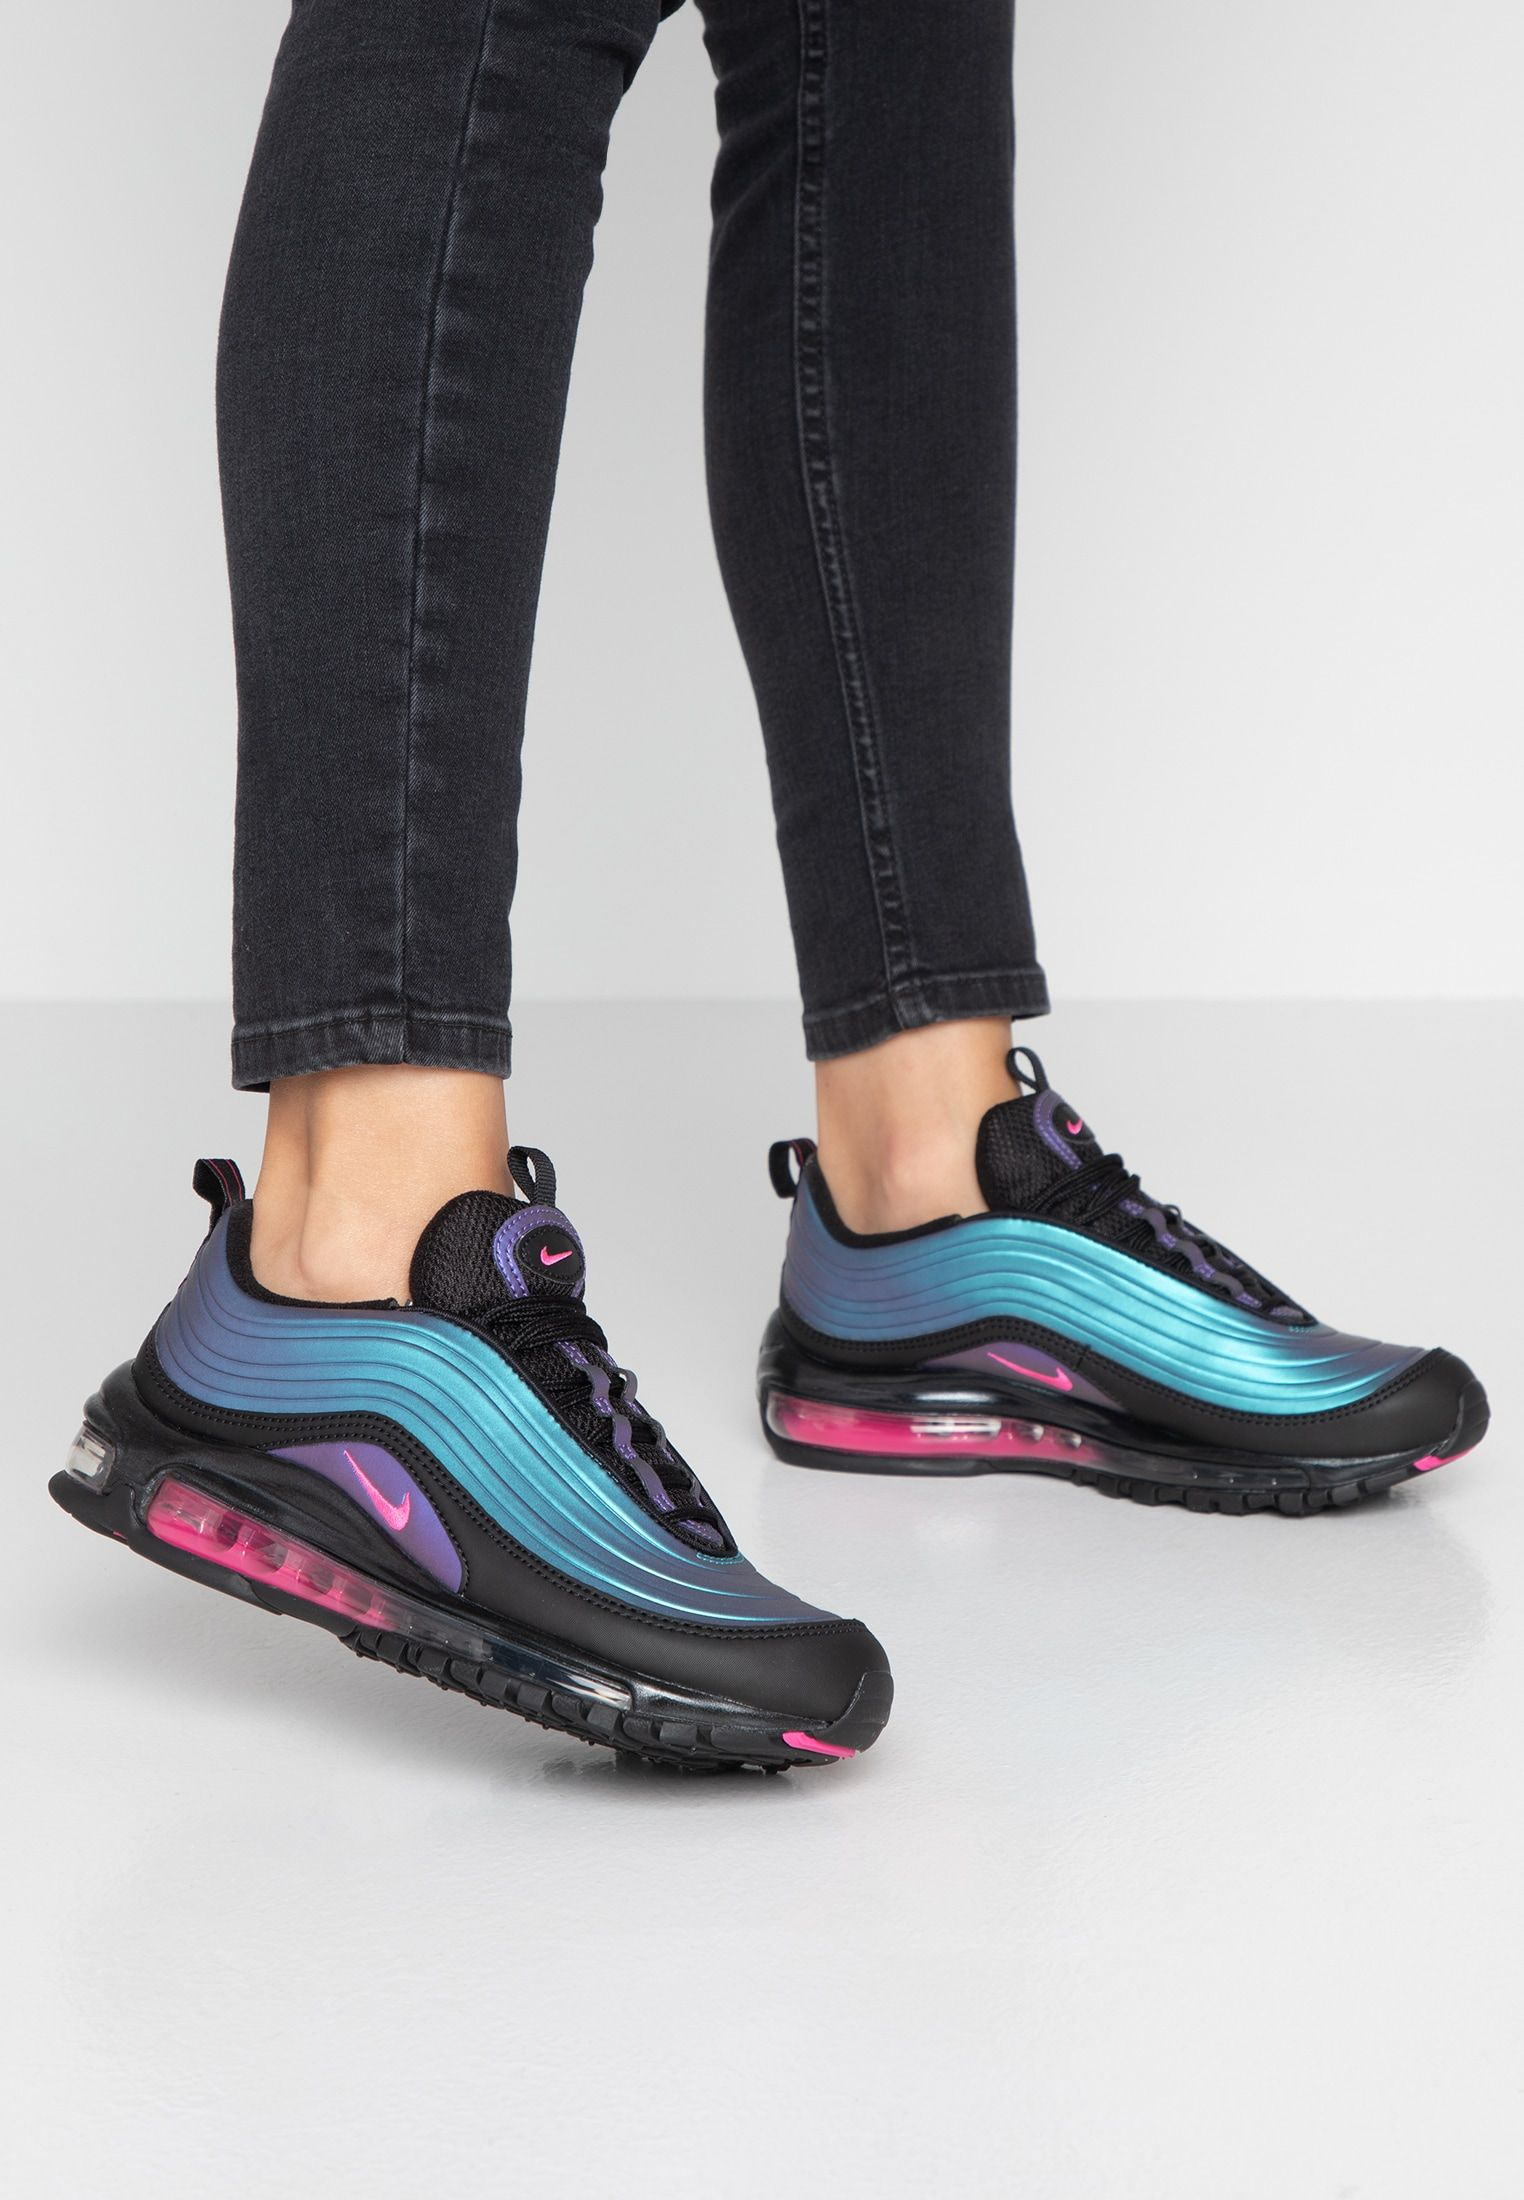 AIR MAX 97 RX Sneakers laag blackmulticolor @ Zalando